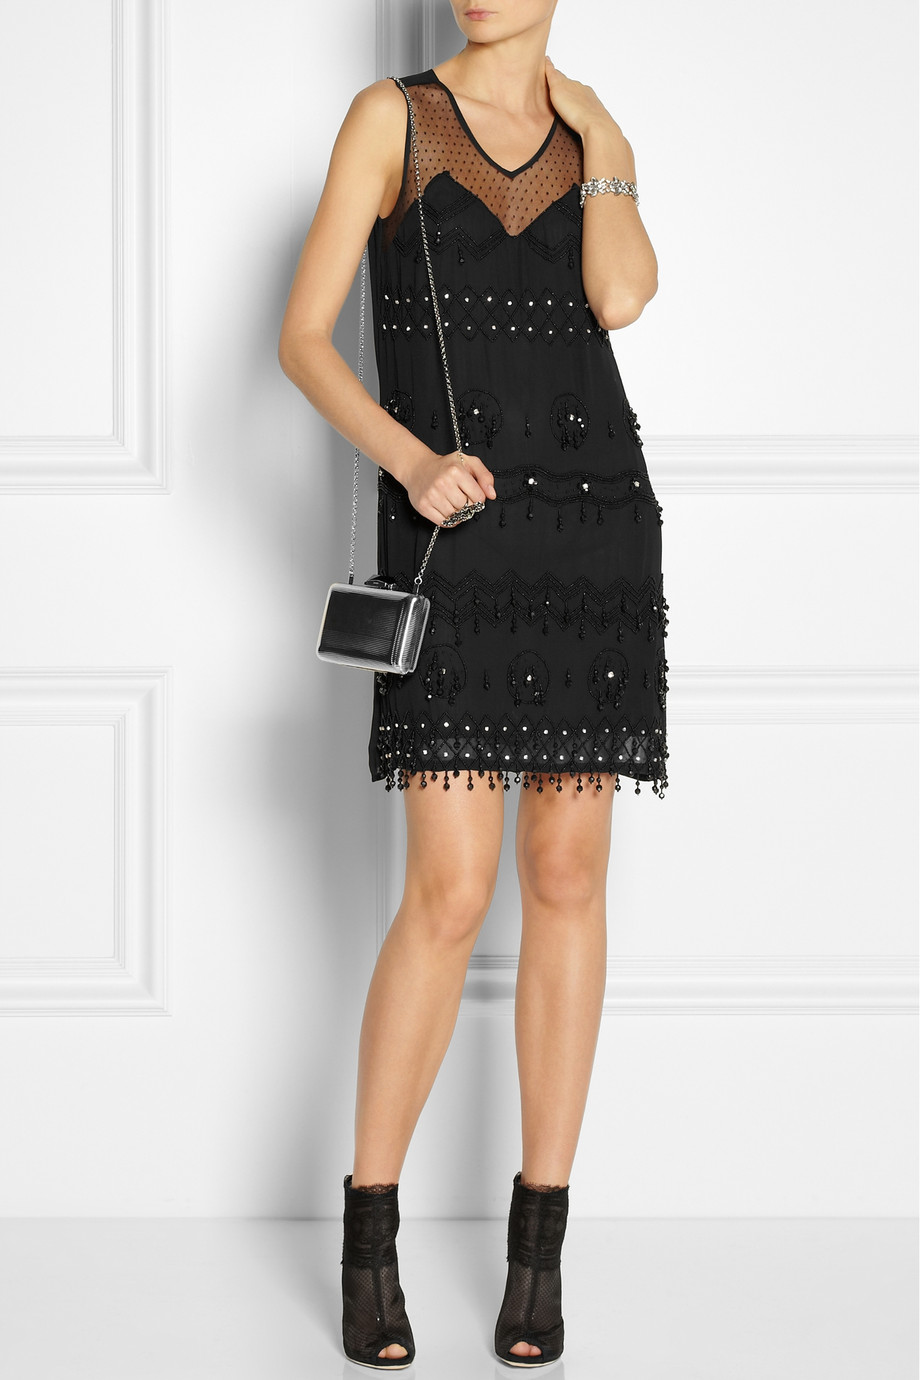 ANNA SUI Embellished Georgette Dress buy HERE